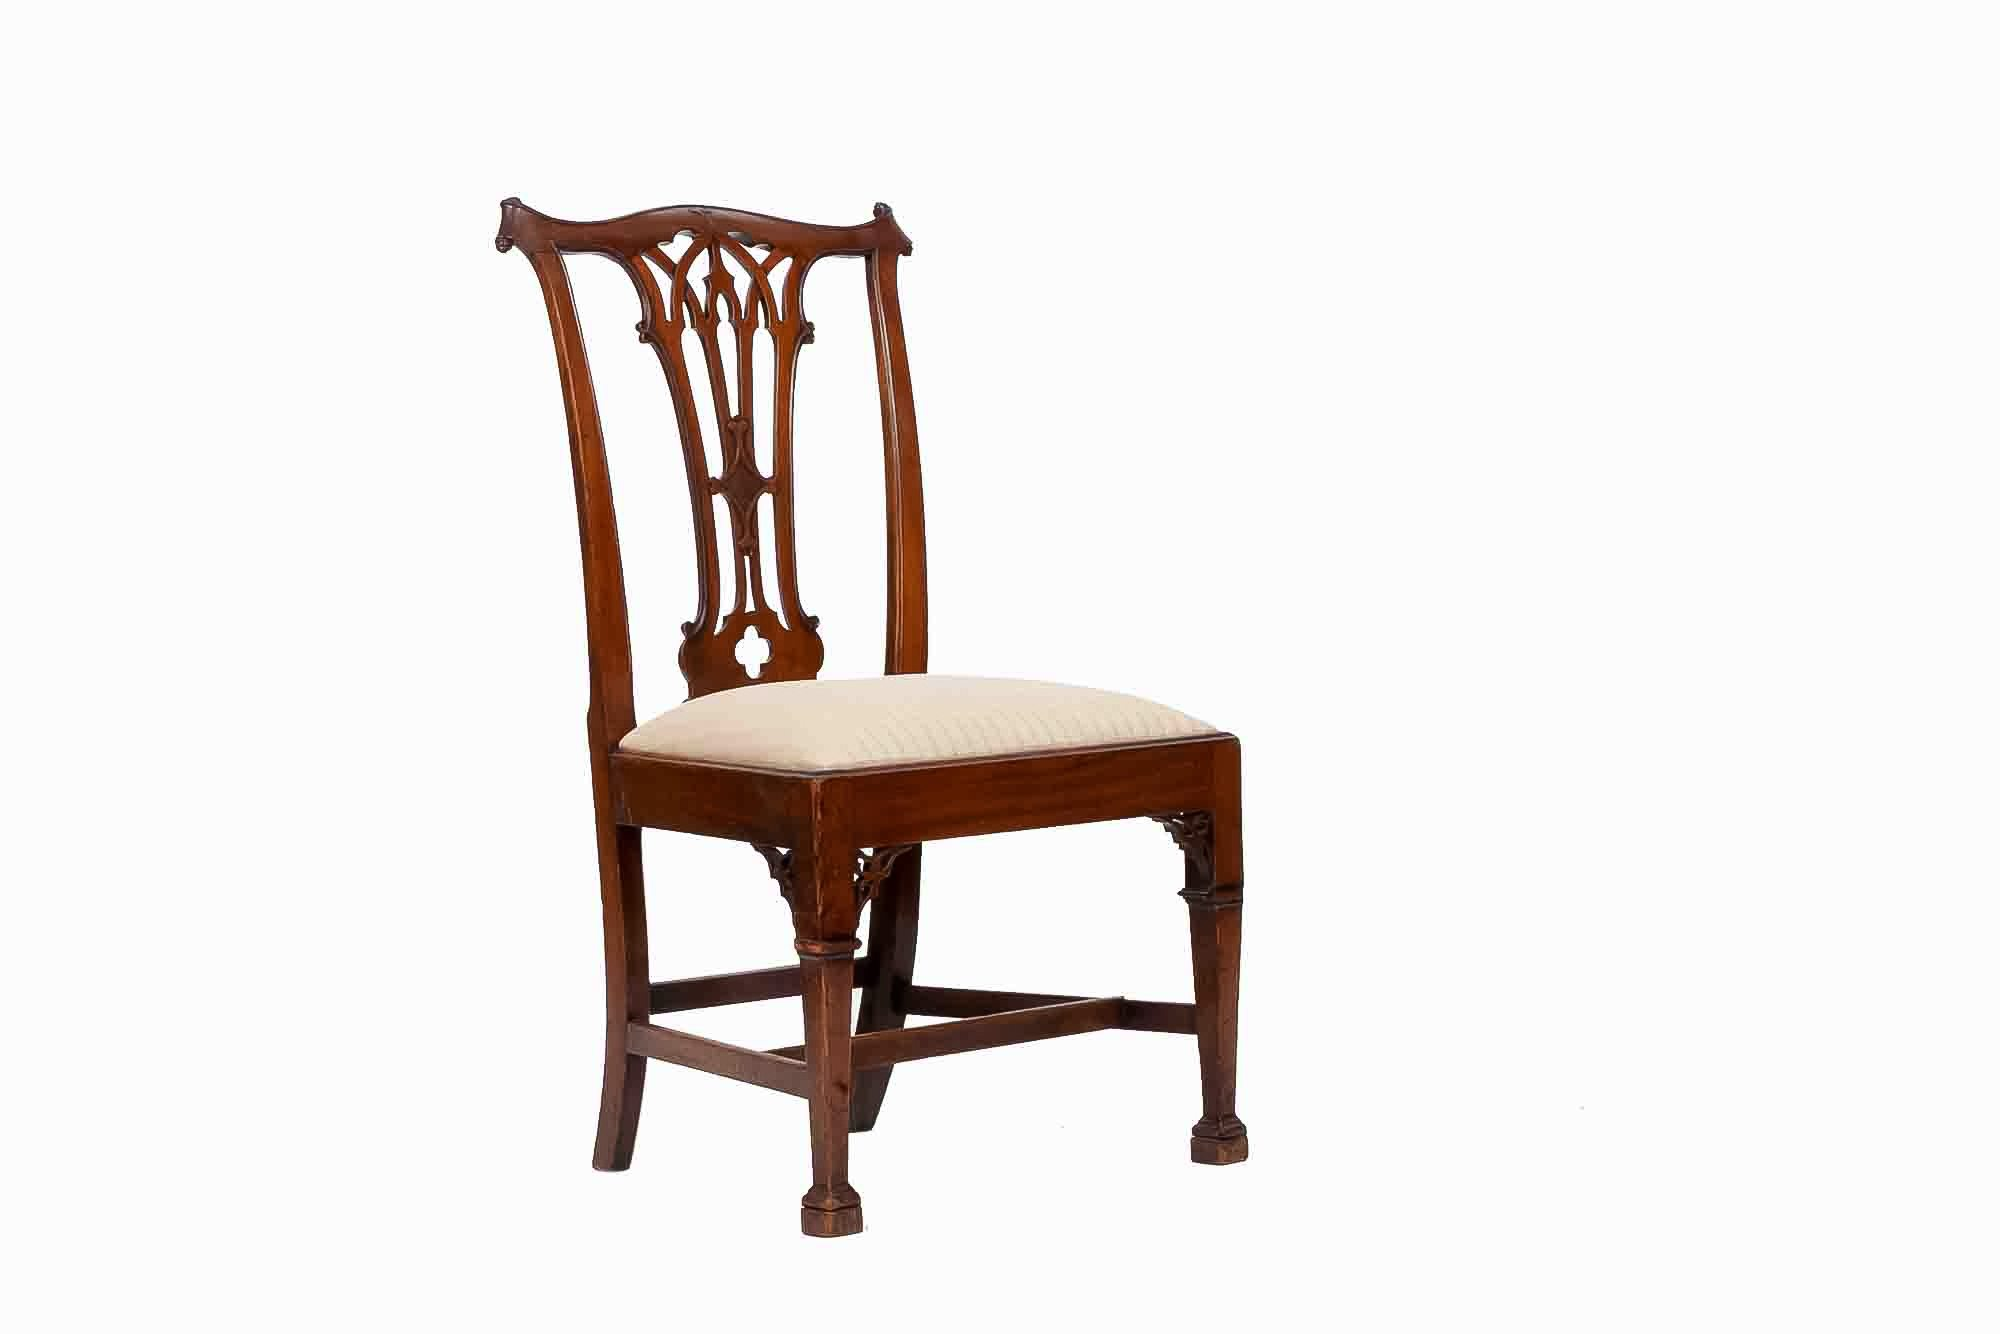 Home/Furniture/Chairs And Seating/Dining Chairs